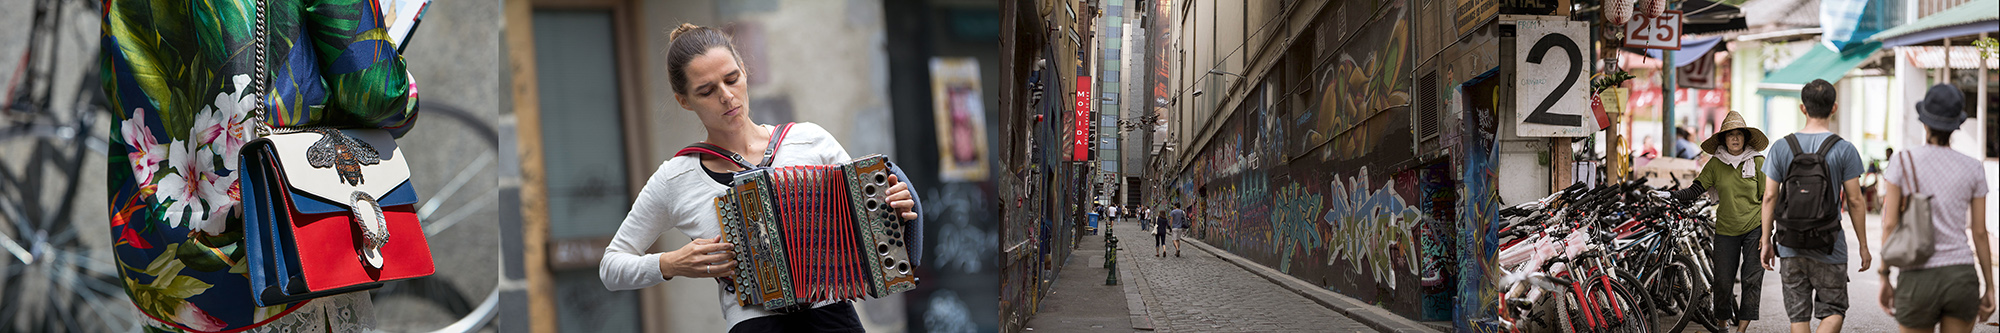 street photography portrait city people camera subject light how to tutorial guide scene accordion bag couple walking town village